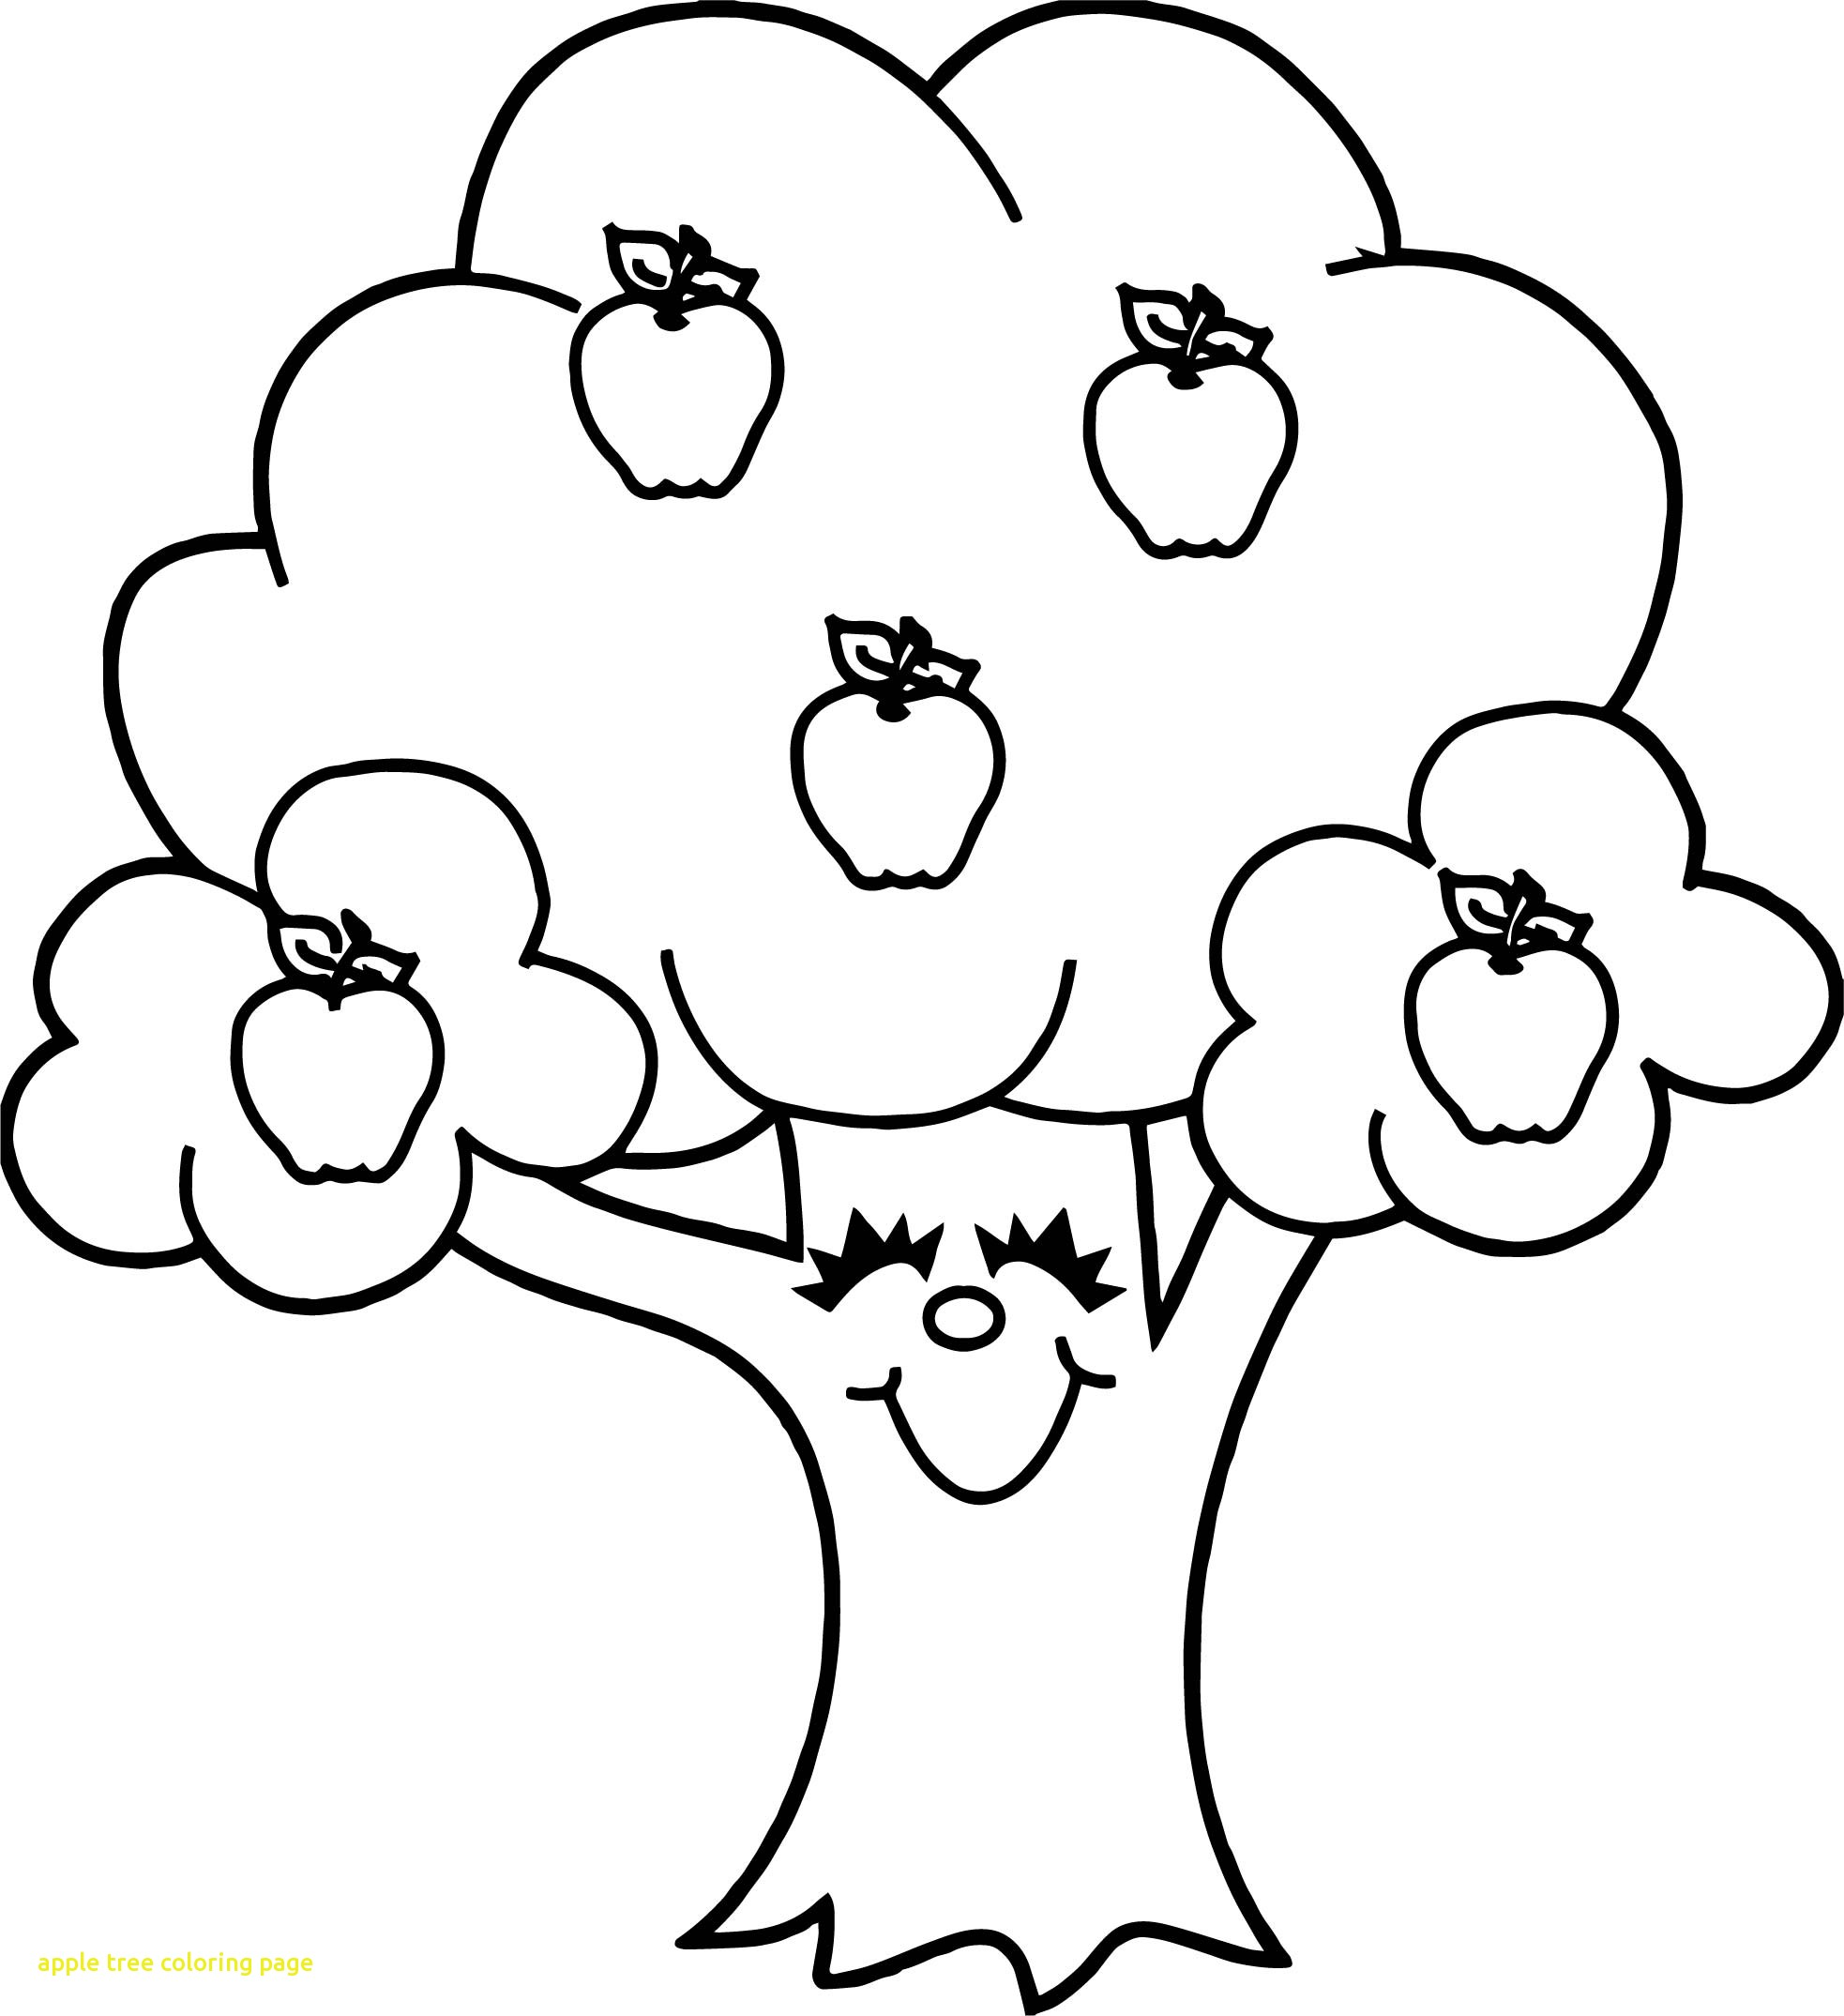 apple tree coloring sheet coloring page for kids apple tree coloring home tree apple sheet coloring